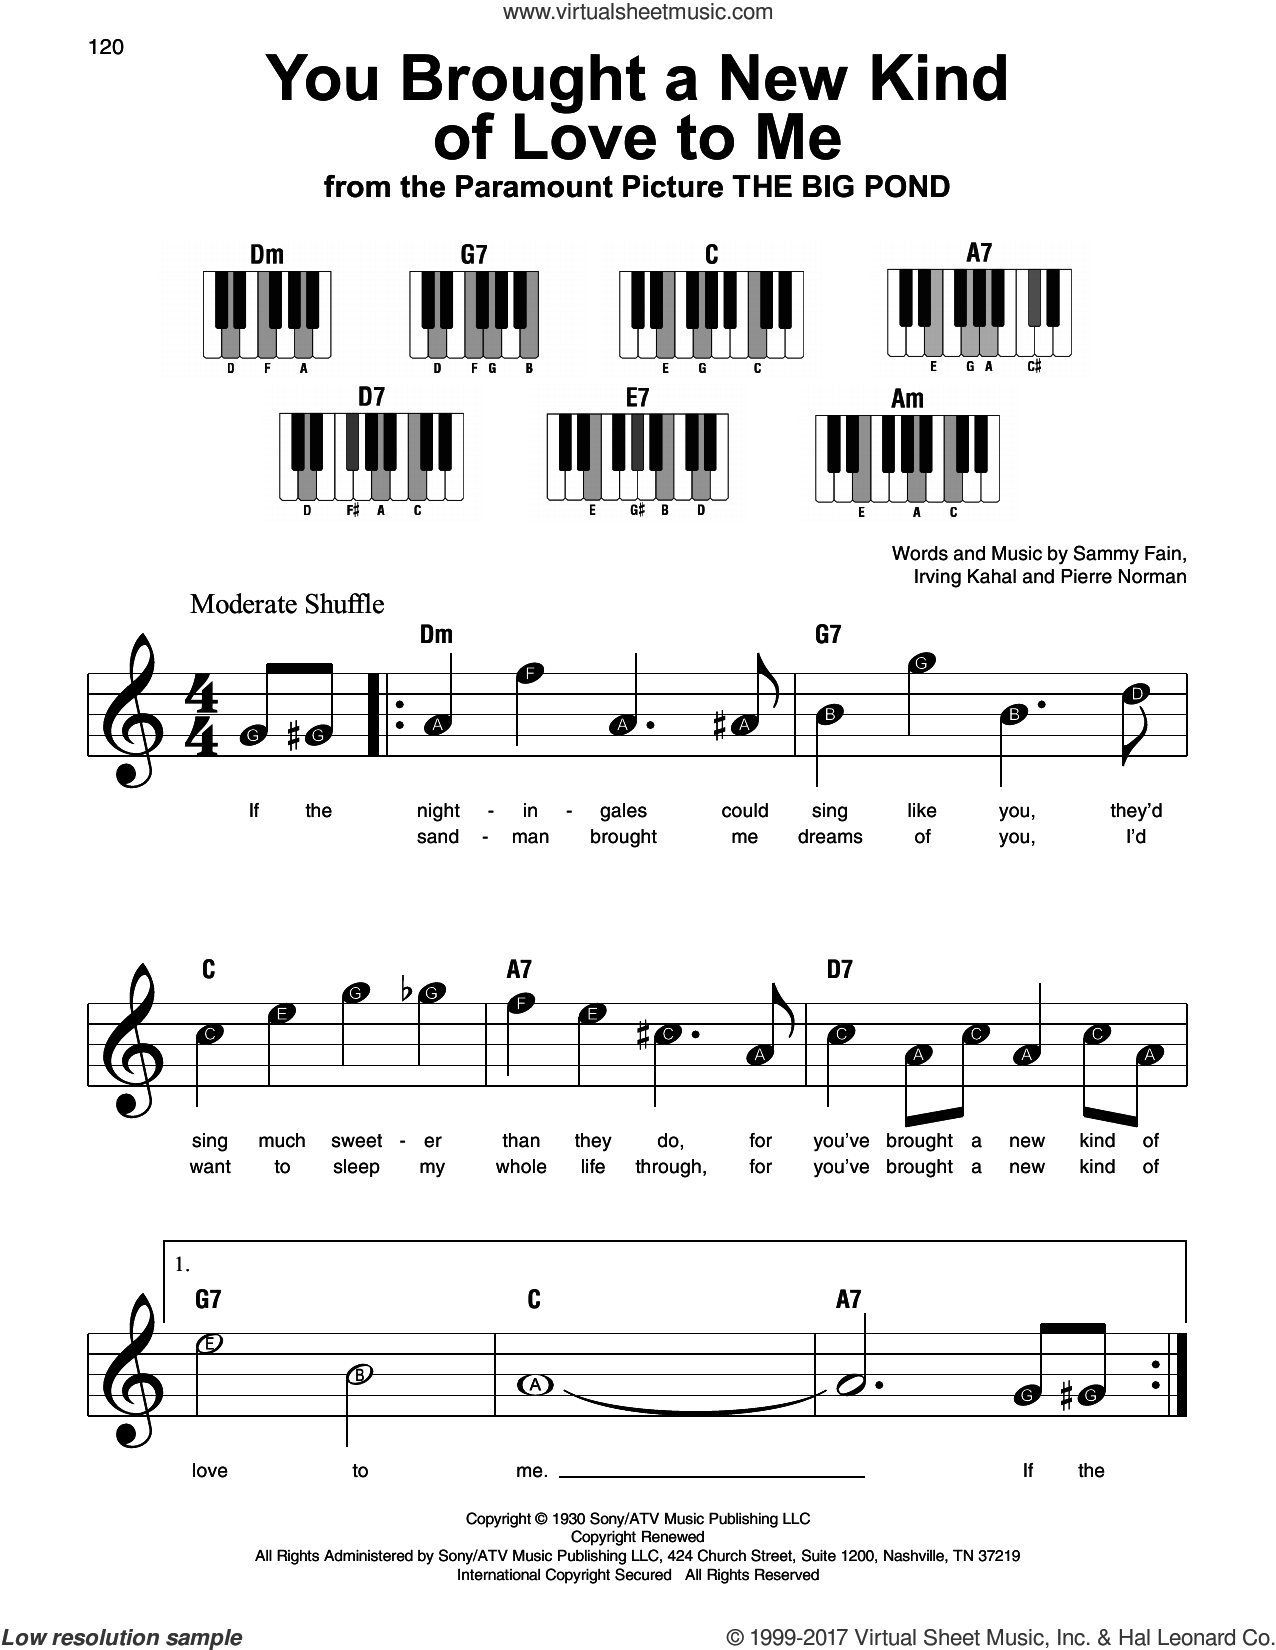 You Brought A New Kind Of Love To Me sheet music for piano solo by Scott Hamilton, Irving Kahal, Pierre Norman and Sammy Fain, beginner skill level